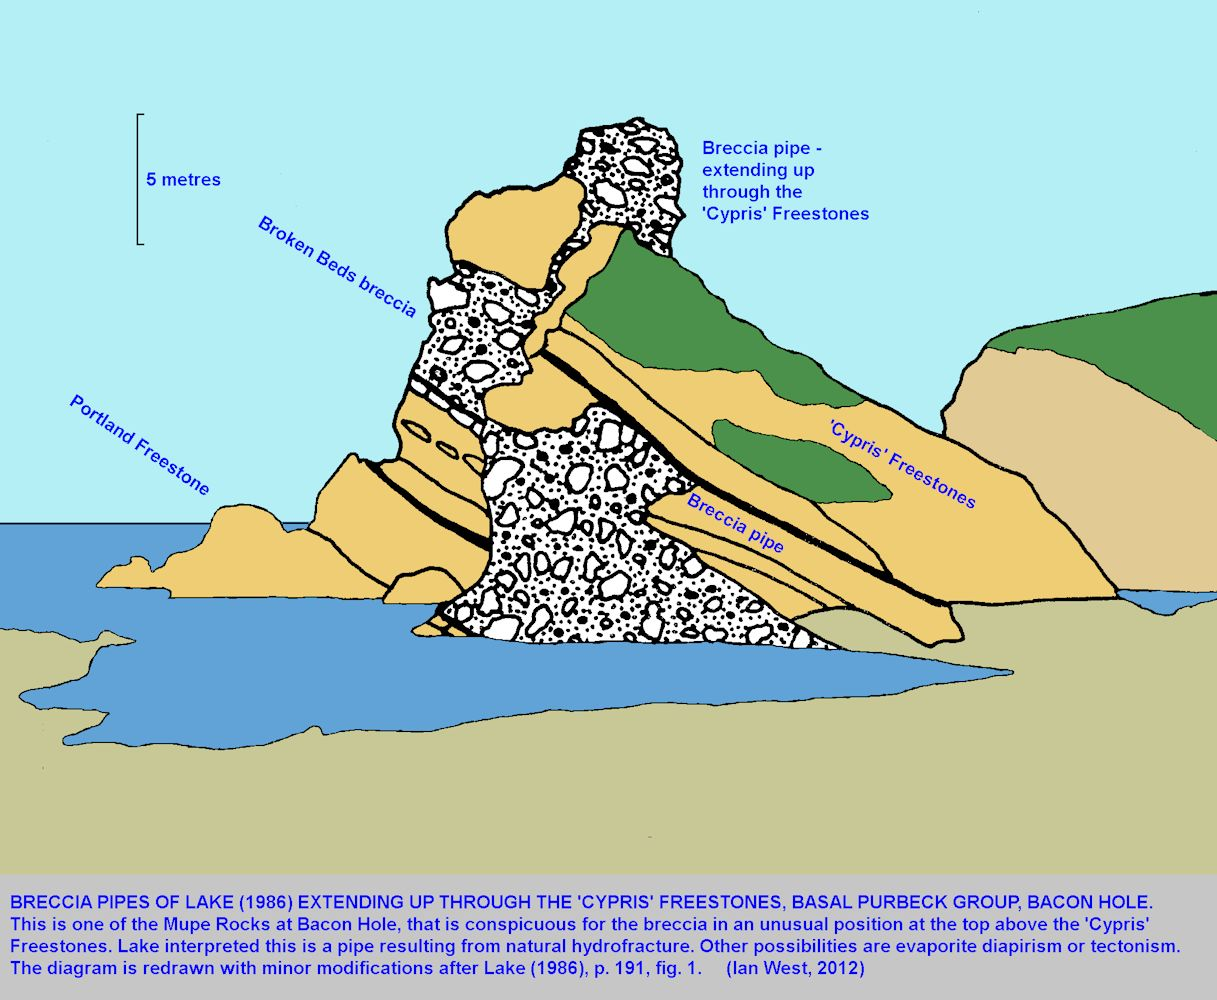 A diagram, based on Lake (1986), showing a supposed breccia pipe extending up from the Broken Beds through and above part of the Cypris Freestones, one of the Mupe Rocks, Bacon Hole, Dorset